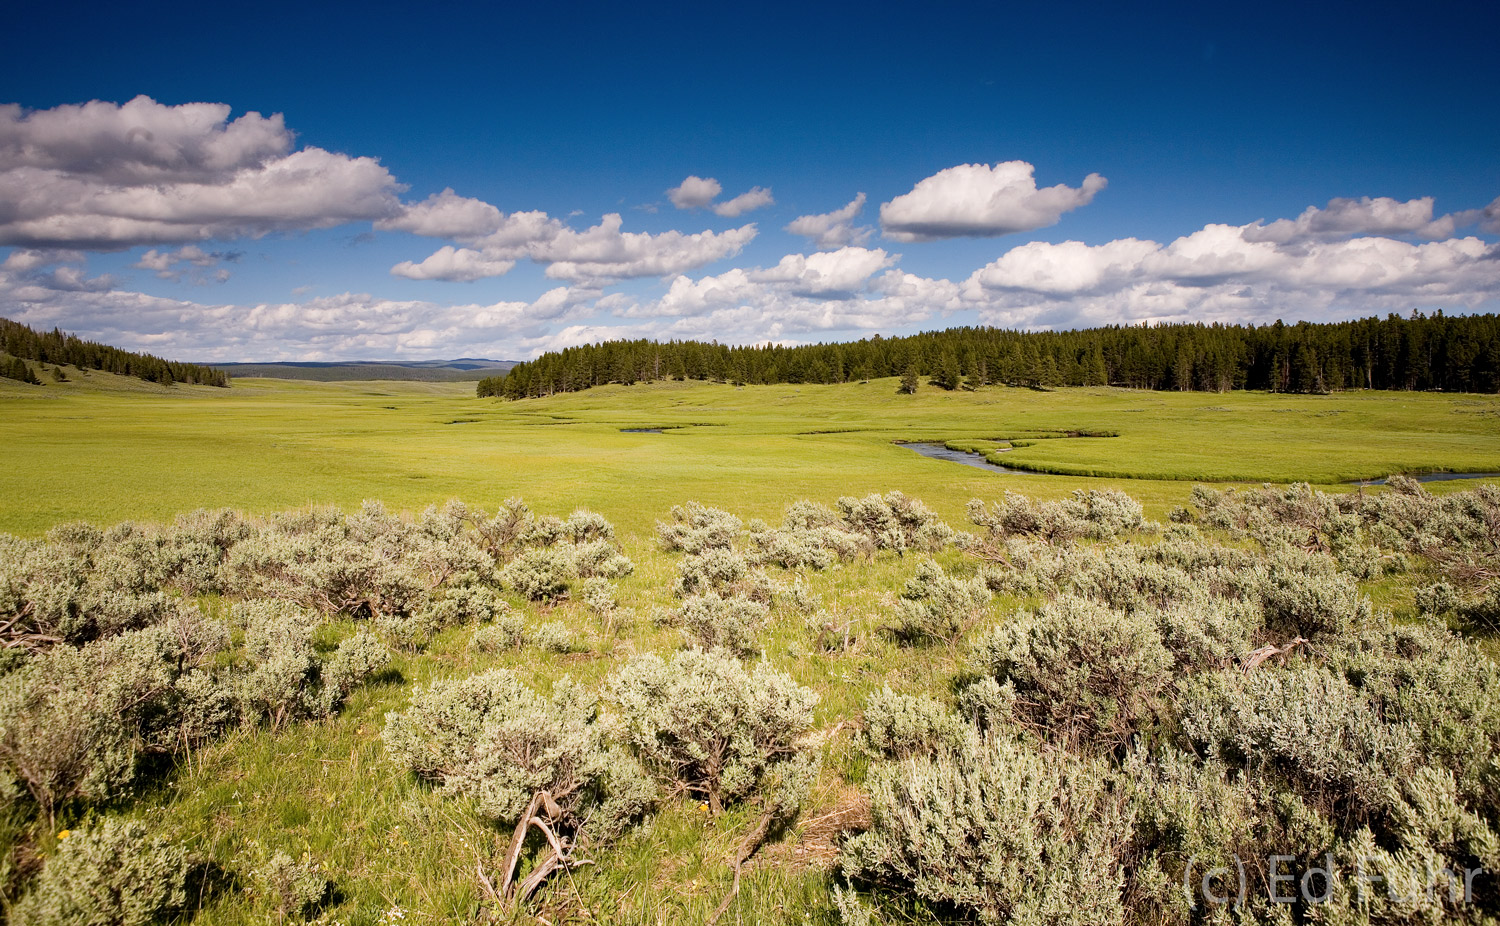 The wide Hayden Valley supports one of the most diverse animal kingdoms.